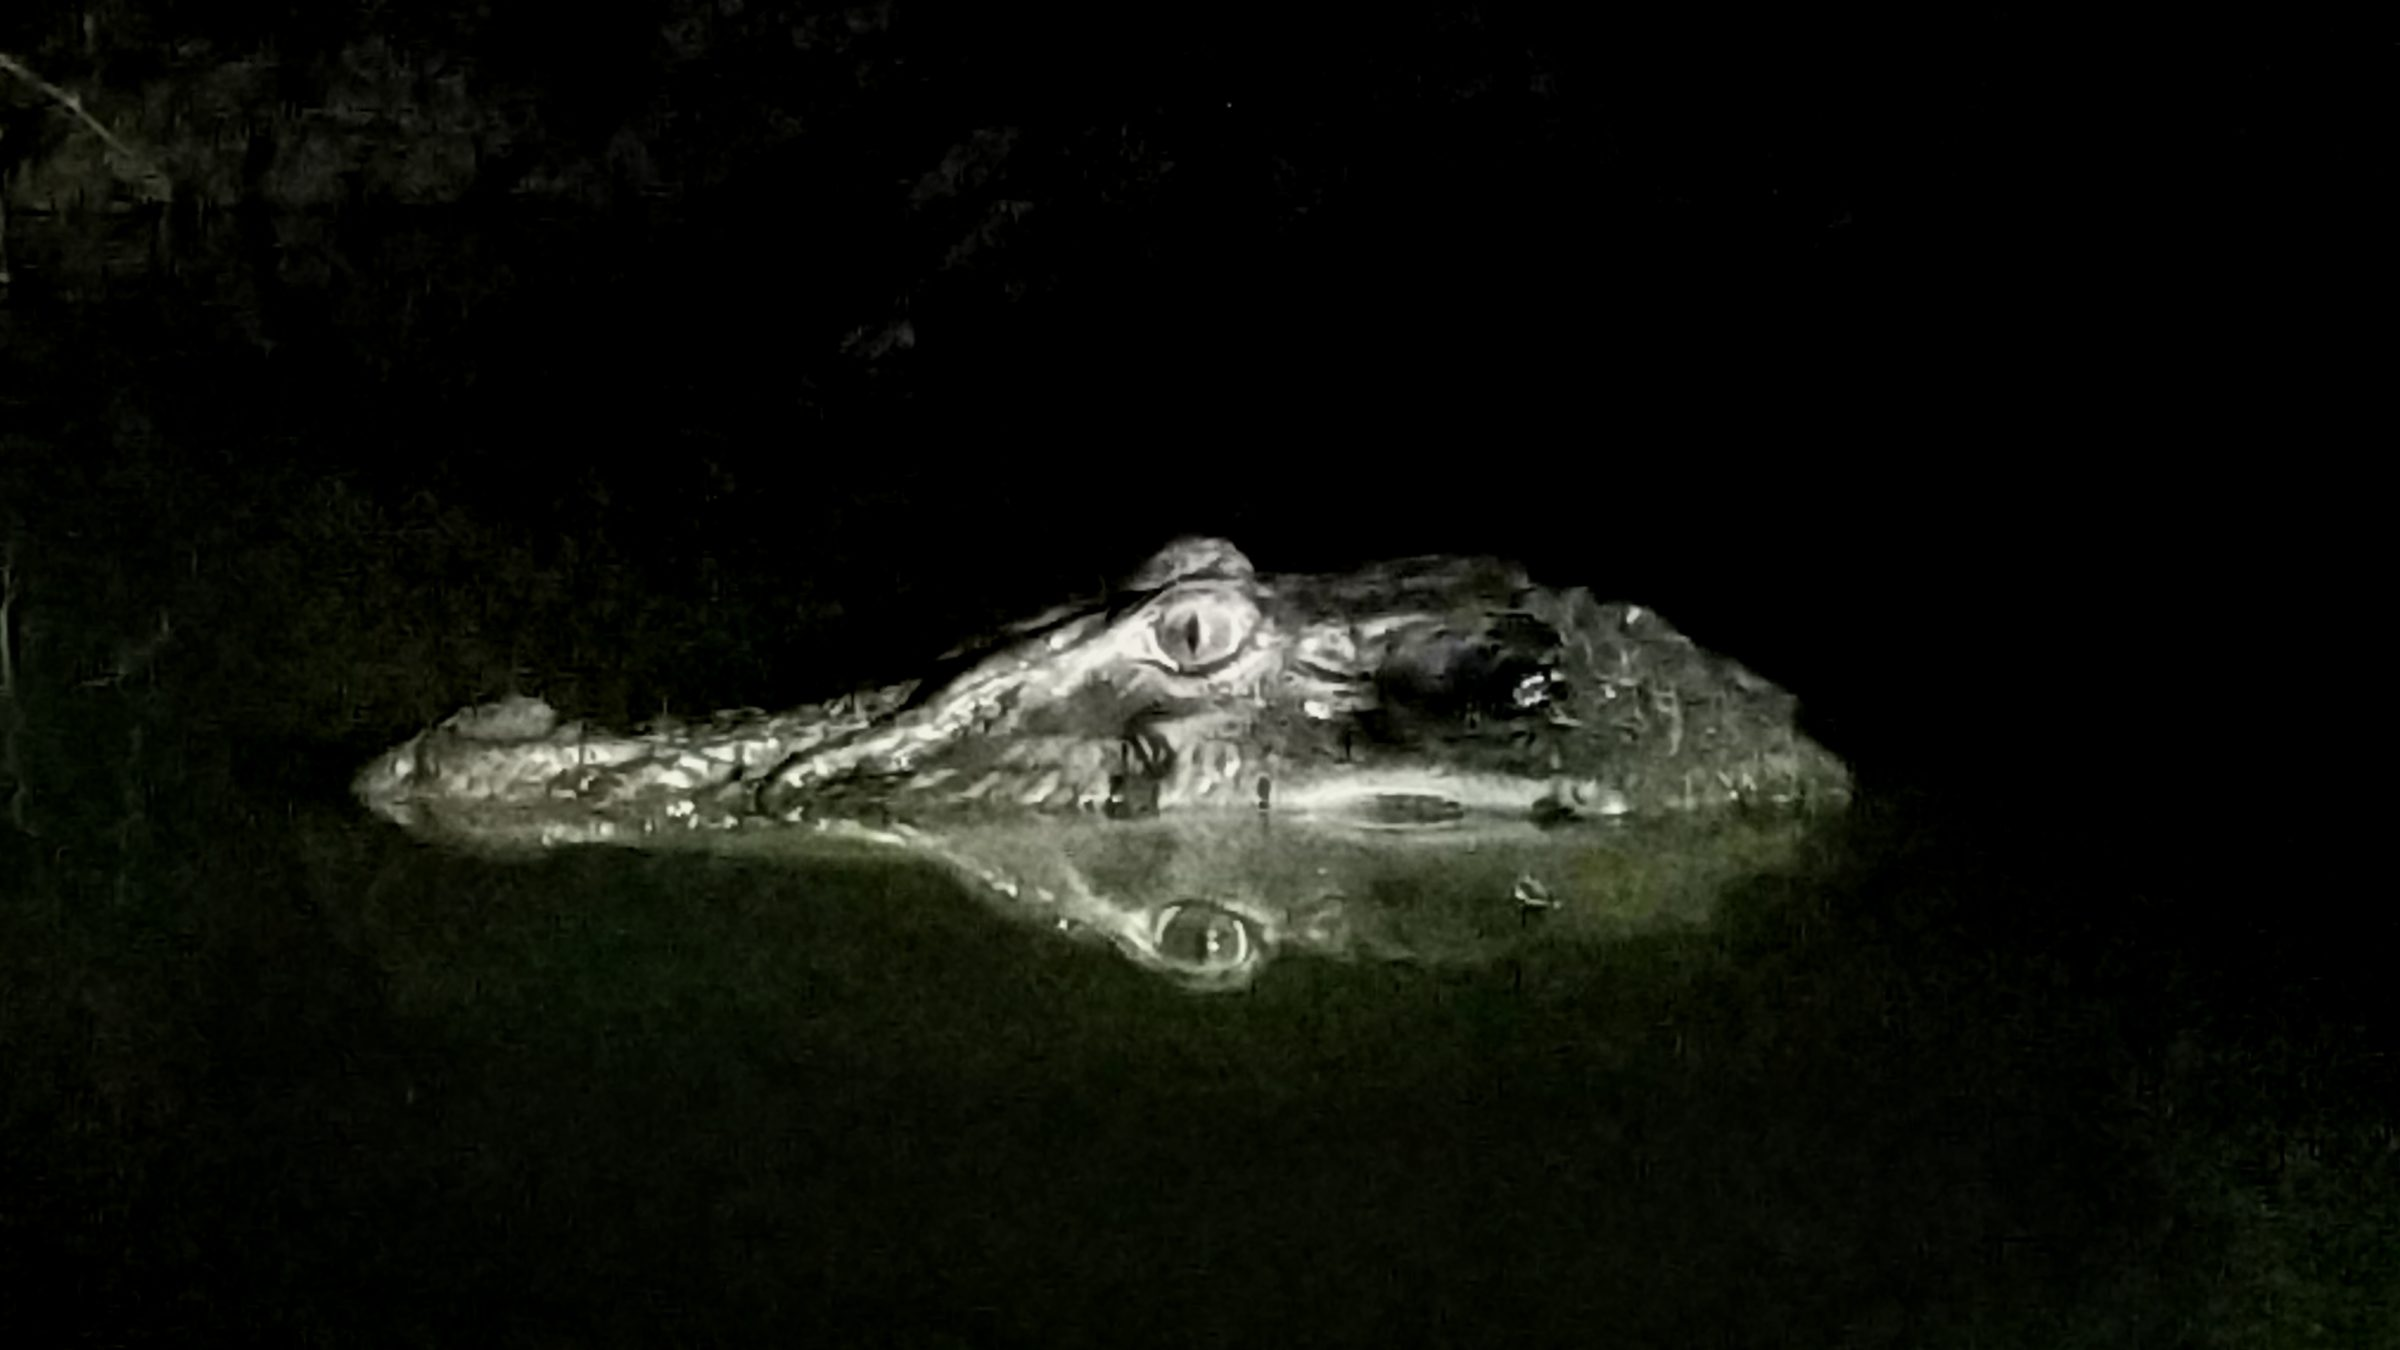 Twelve foot black caiman!